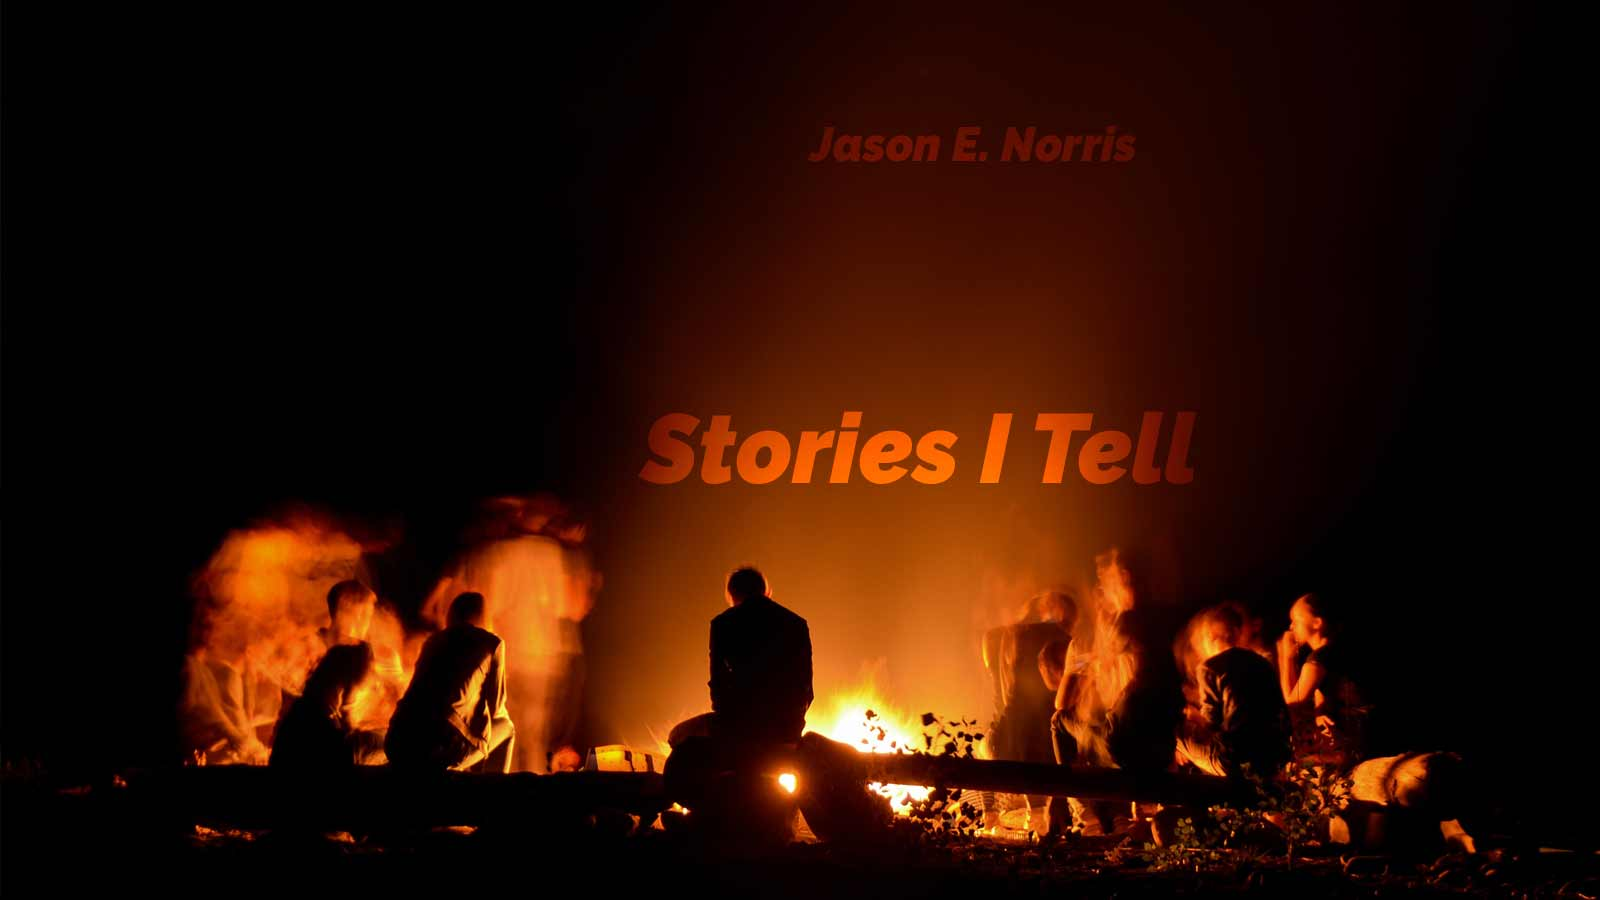 """Telling stories around the campfire. Photo by Photo byJoris VoetenonUnsplash. """"Stories I Tell"""" is a storytelling experiment at JasonNorris.com"""